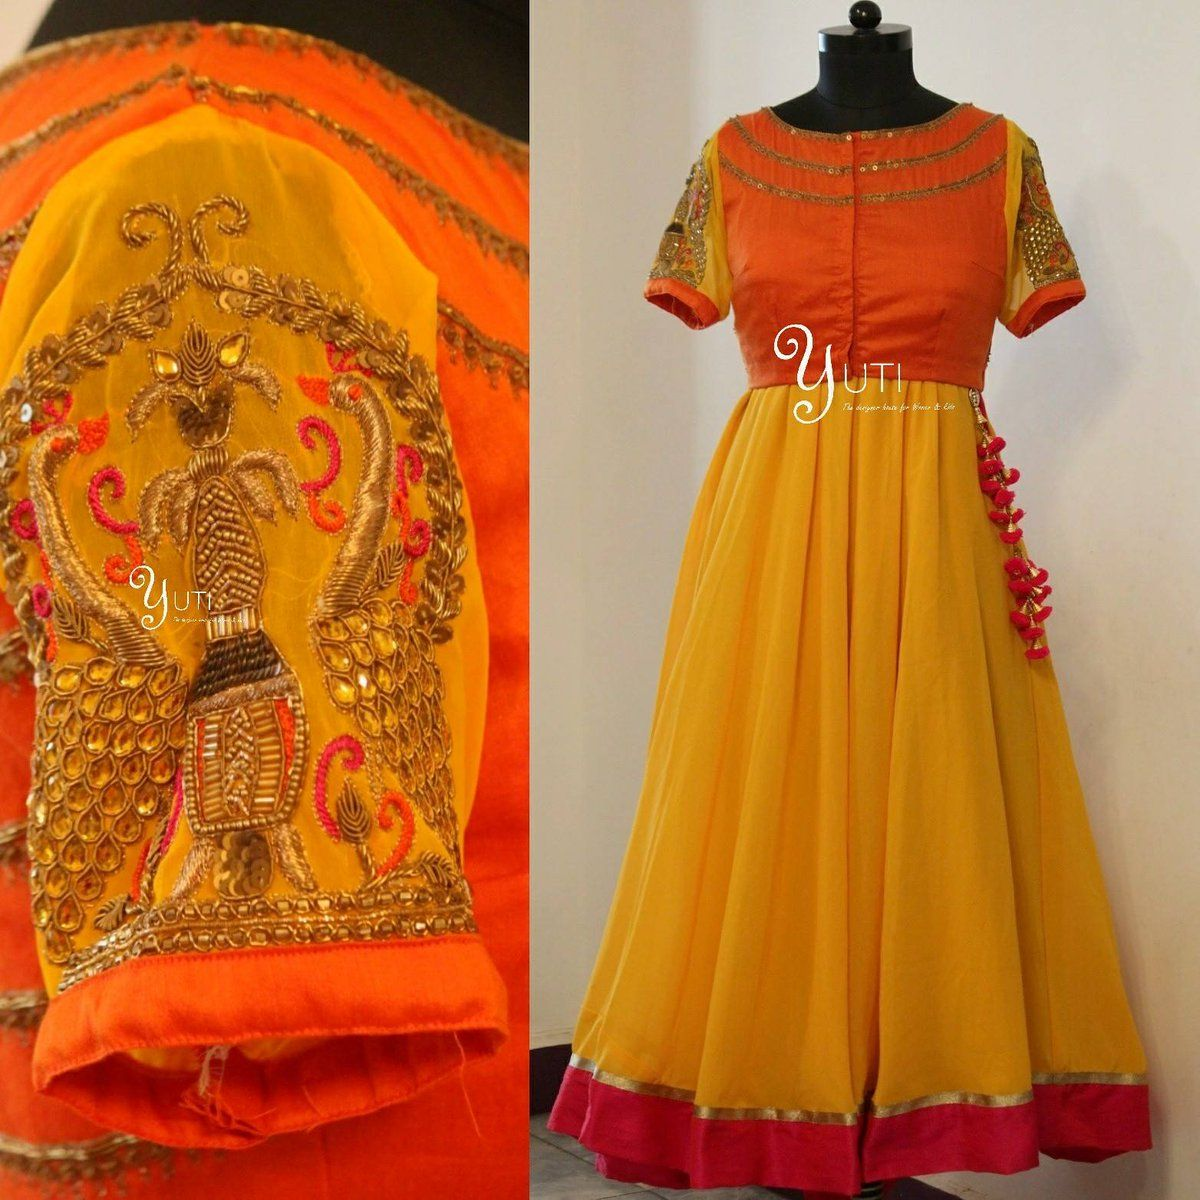 Orange as beautiful as Sunrise can be  a Pink as bright as pink can be with a yellow so rich as gold - a combination thats too colourful for Words by YUTI!